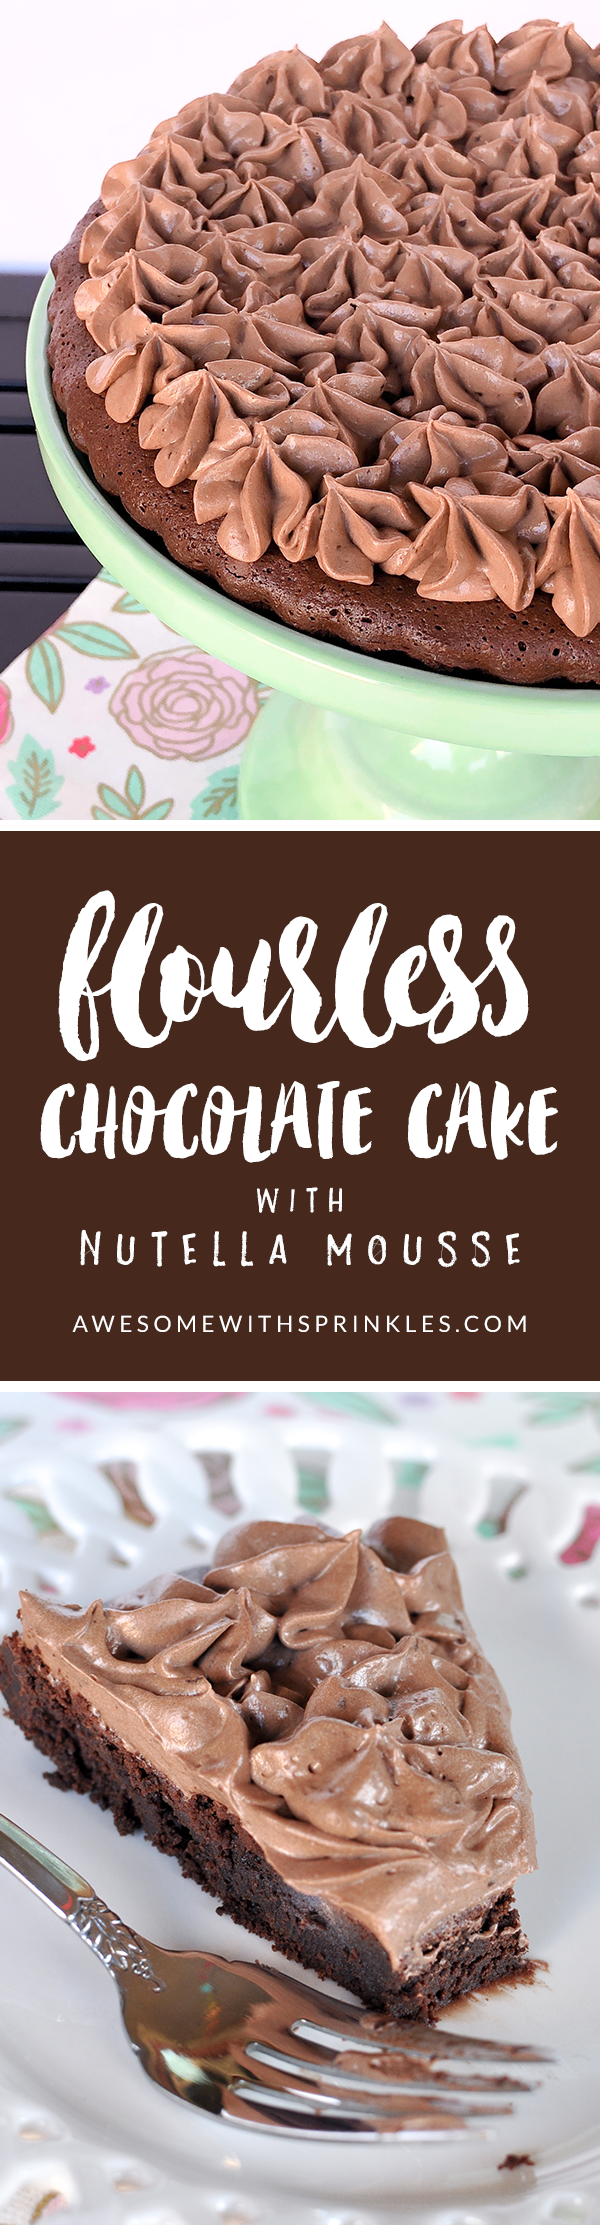 Flourlesas Chocolate Cake with Nutella Mousse | Awesome with Sprinkles